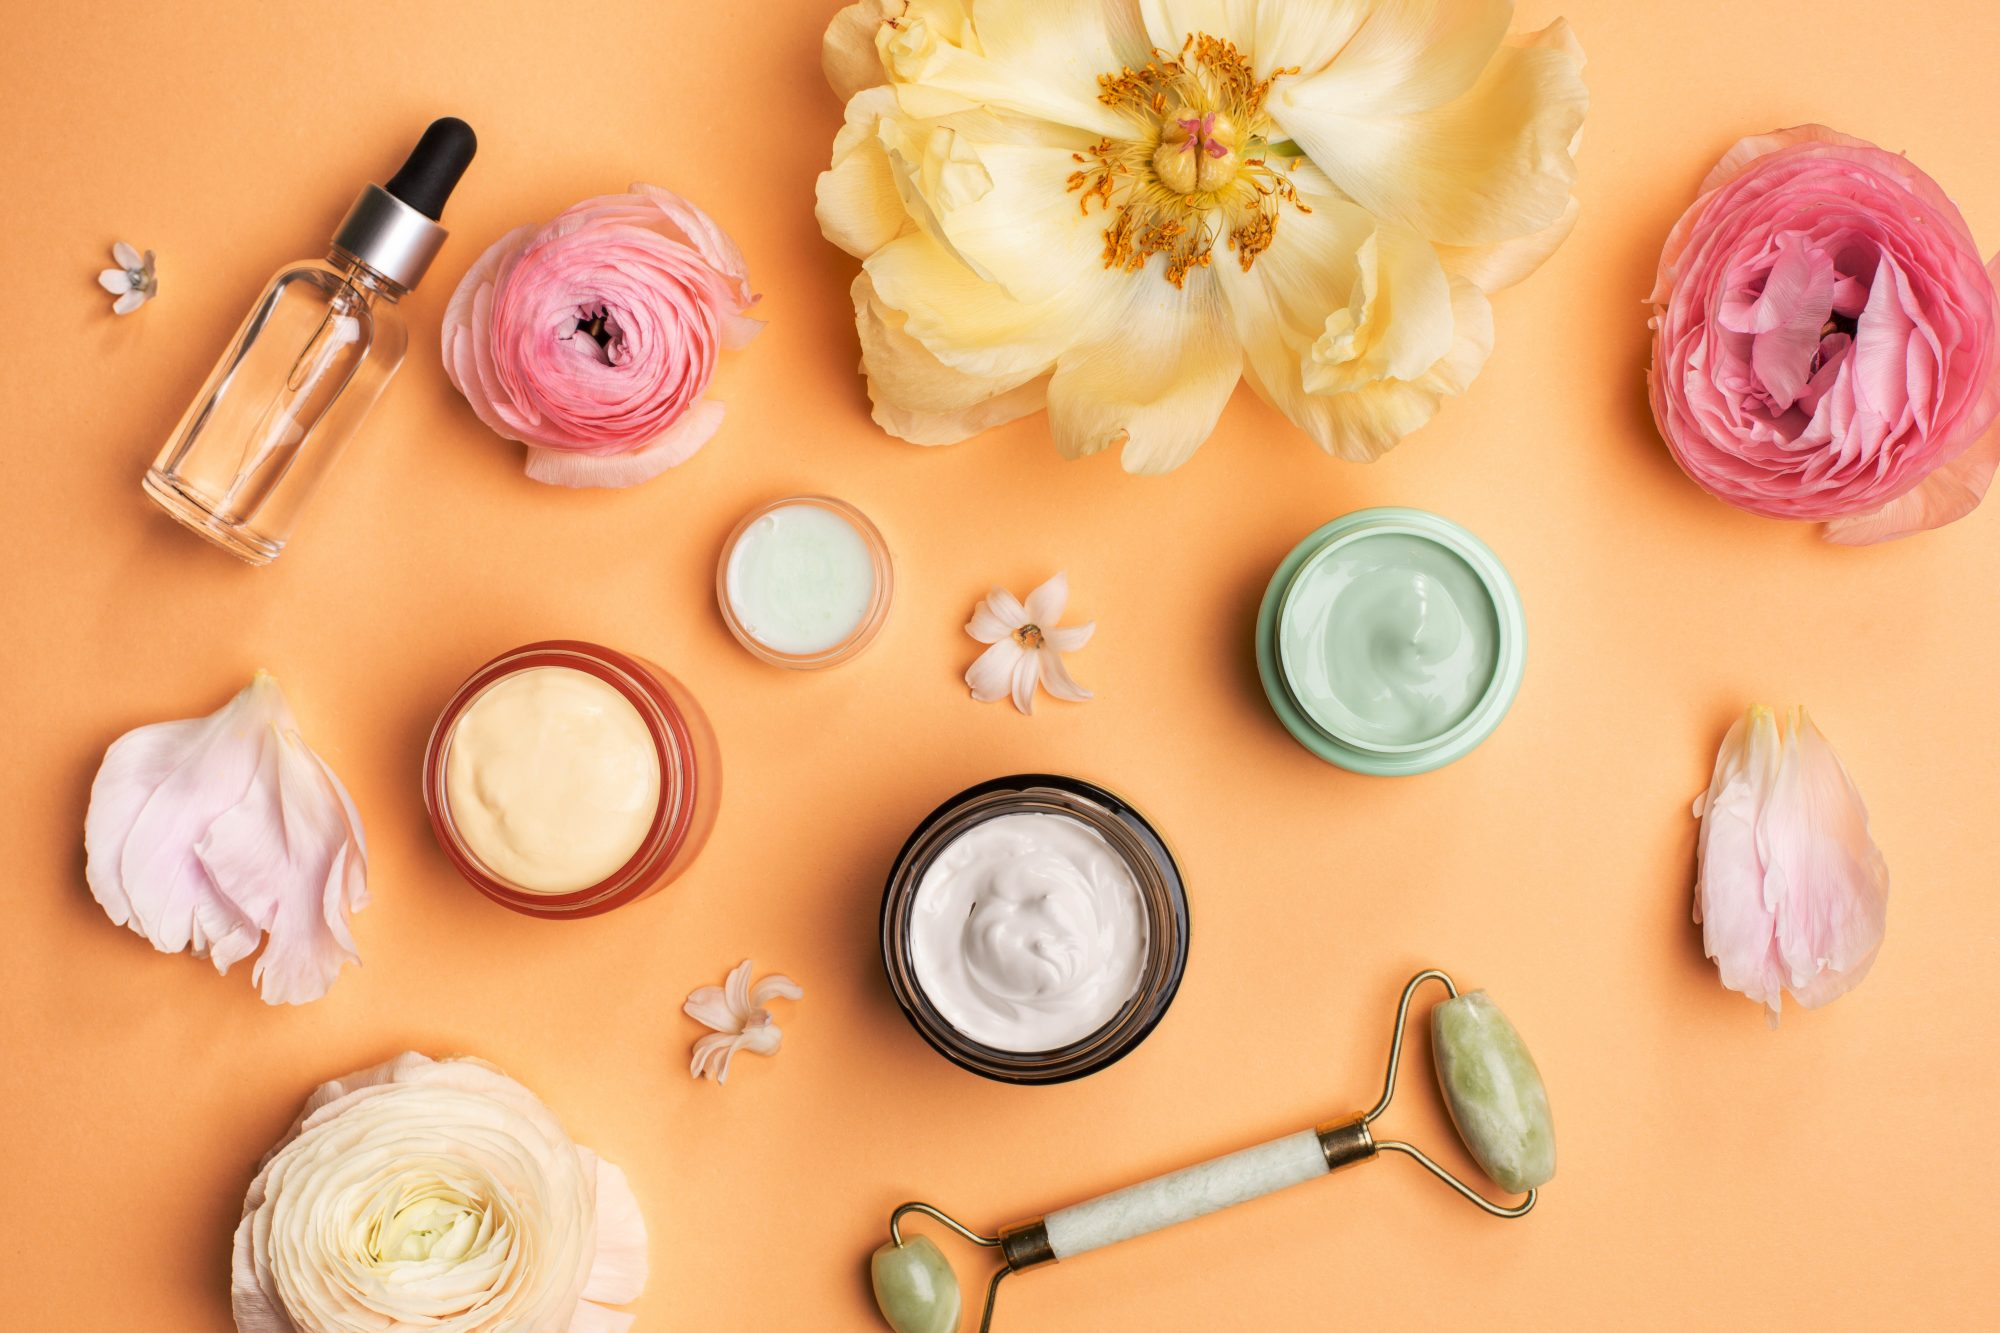 spring-skincare-routine: cosmetics and beauty products